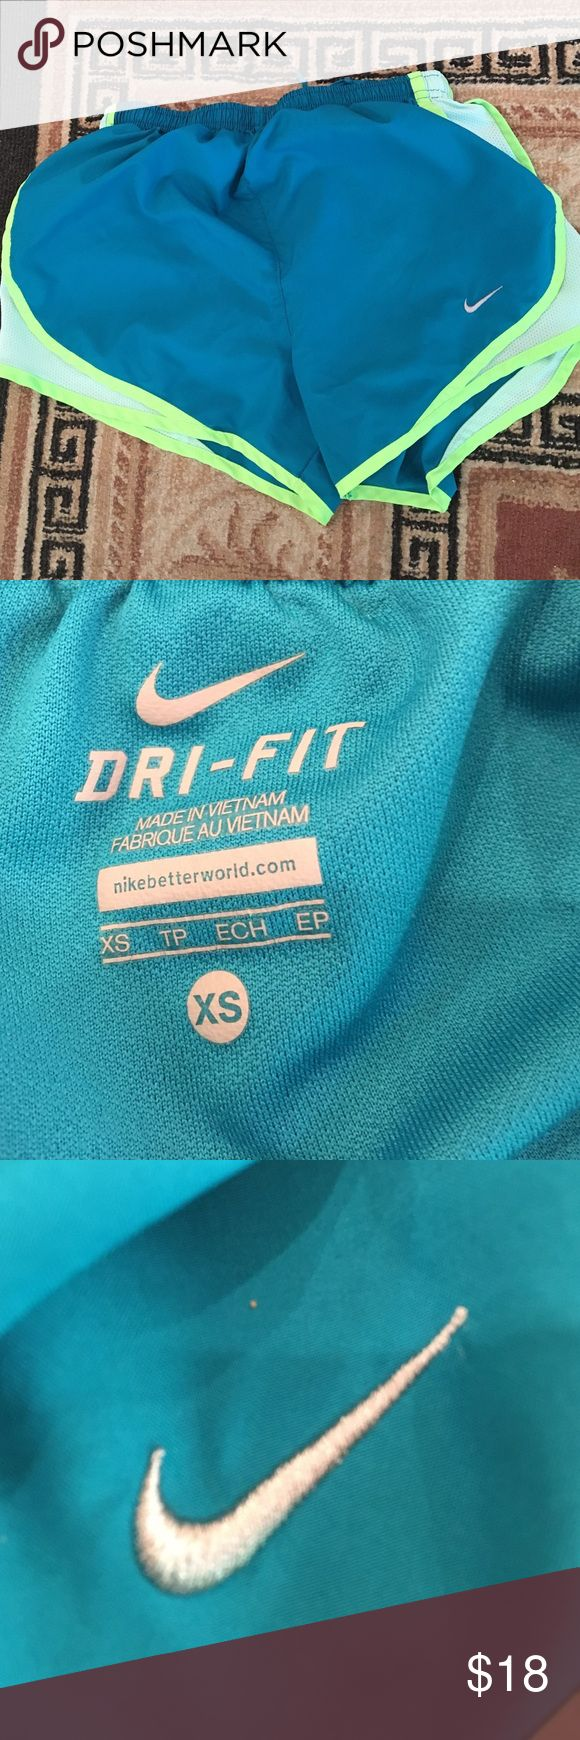 Blue Nike dri fit shorts Blue and electric green dri fit shorts size xsmall never worn and no damages Nike Shorts